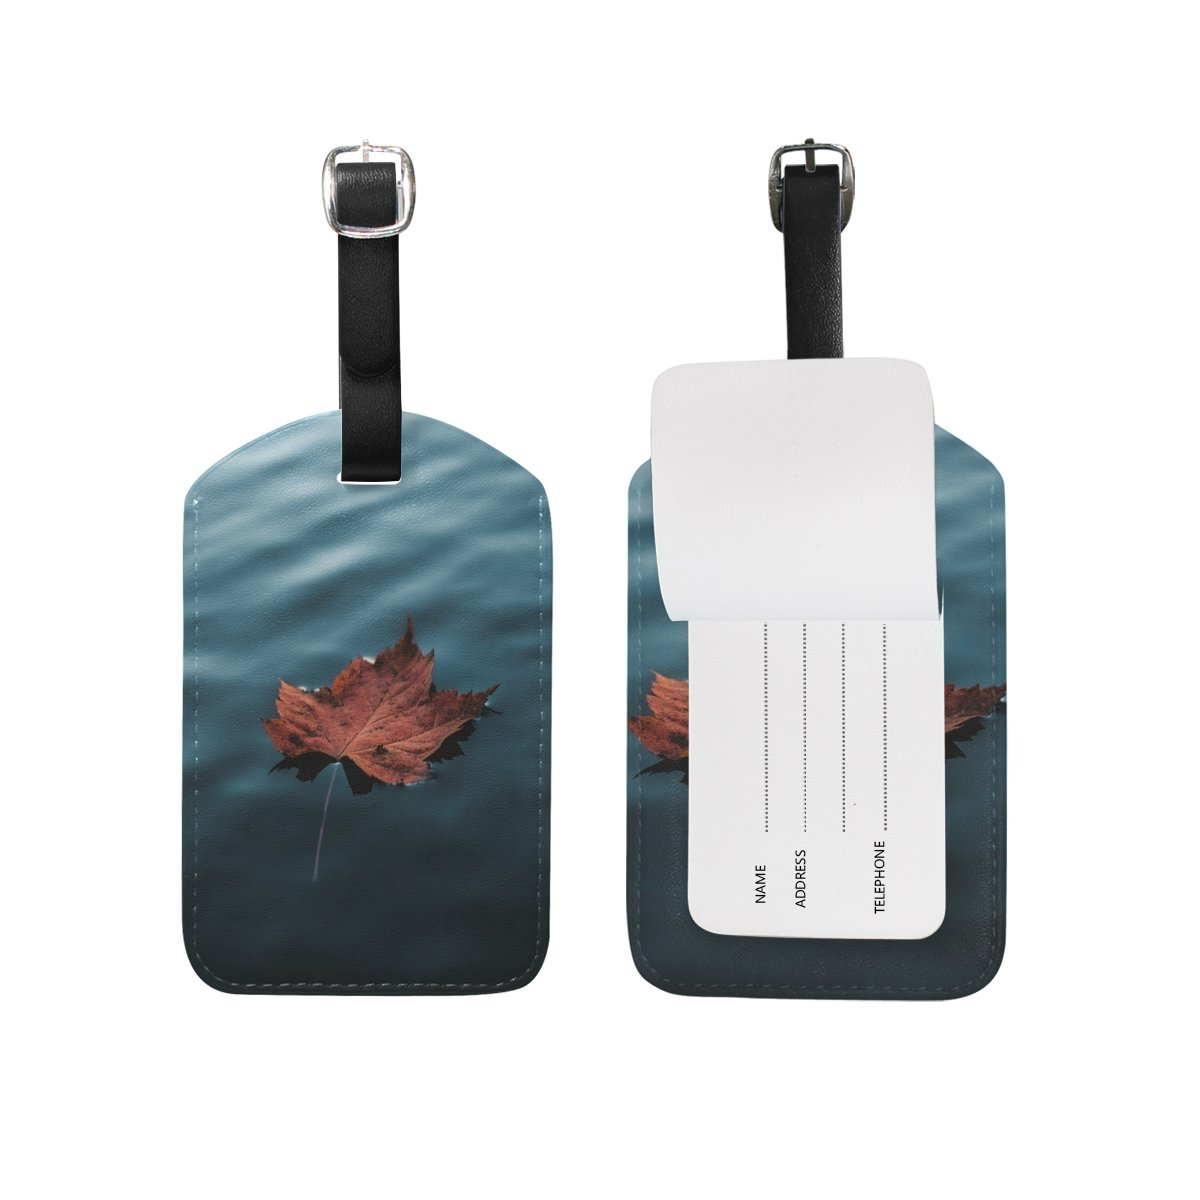 1Pcs Saobao Travel Luggage Tag Deciduous Sea Water PU Leather Baggage Suitcase Travel ID Bag Tag